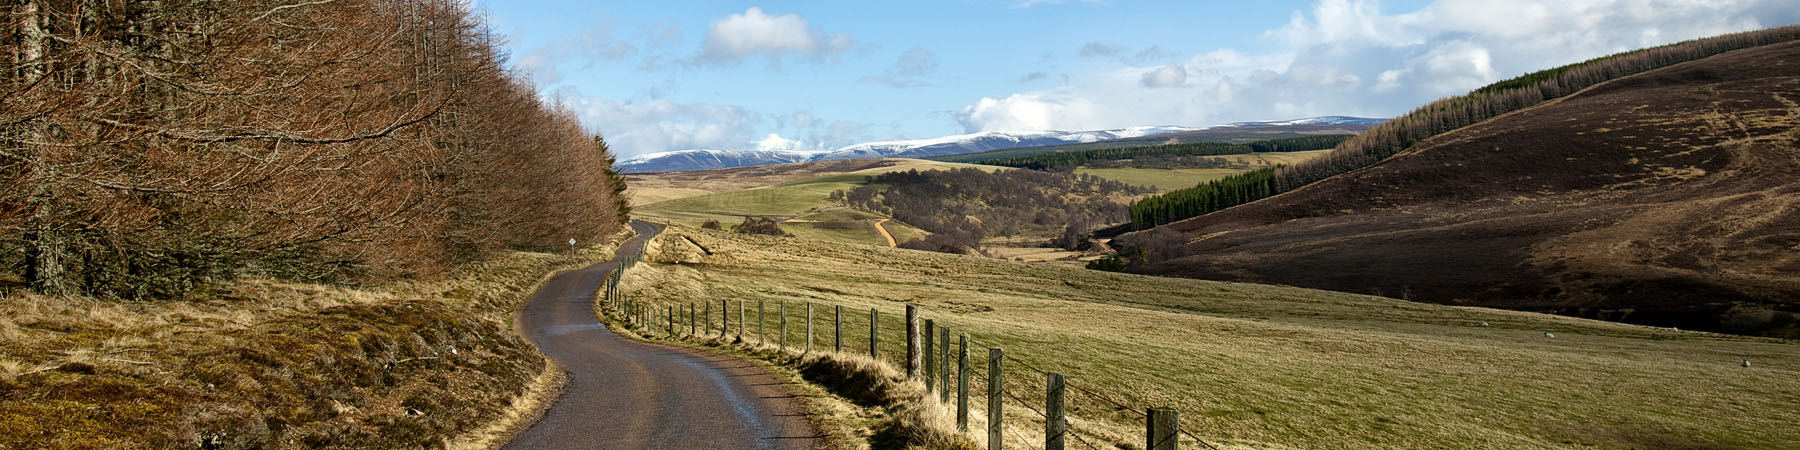 Road in the Highlands heading towards mountains